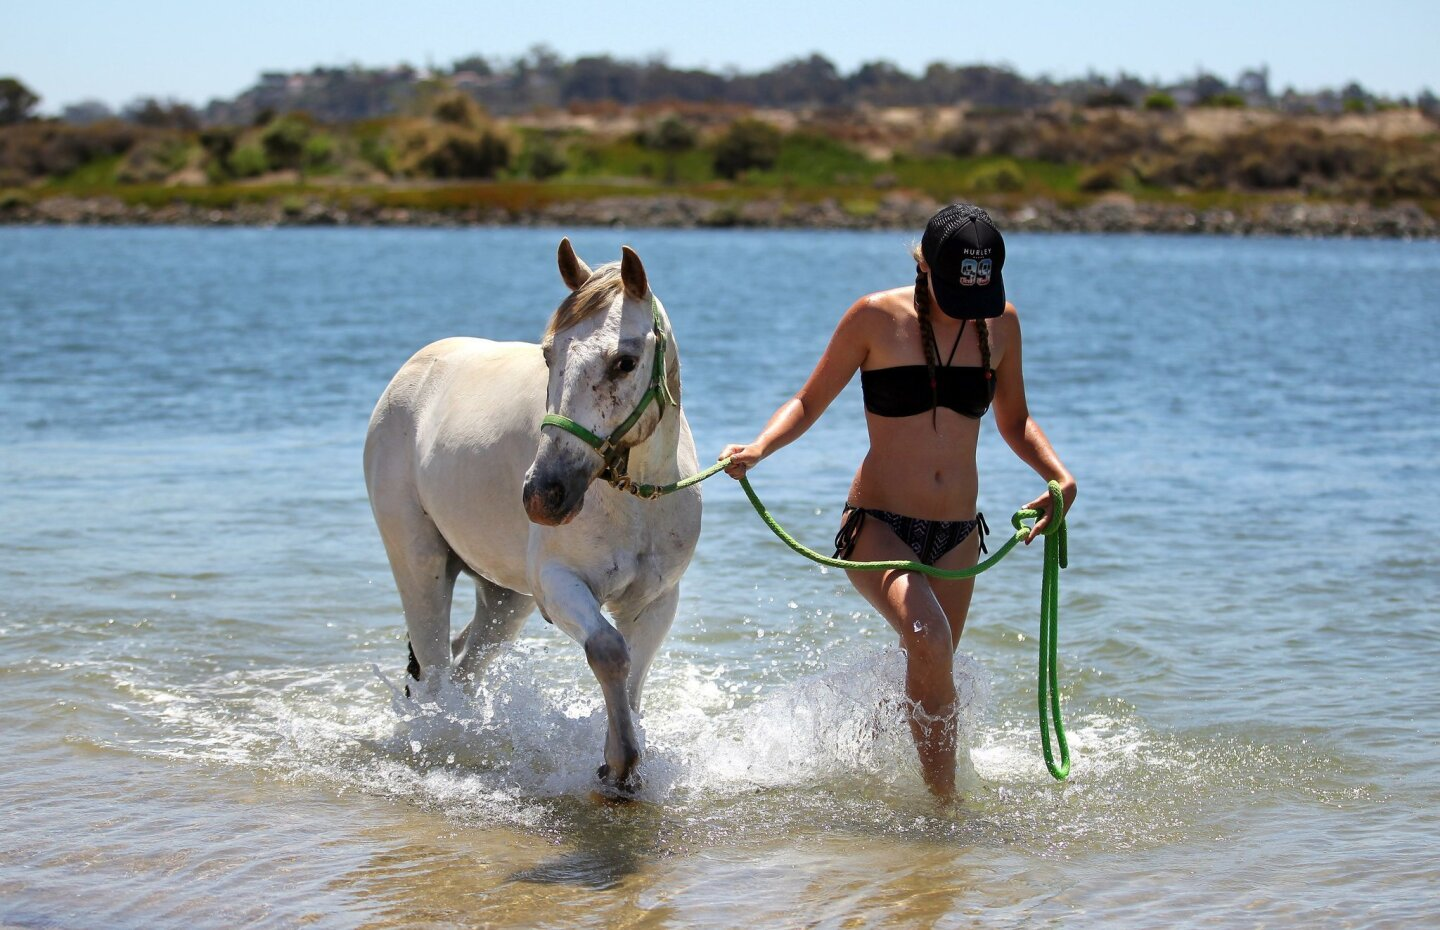 Fiesta Island, a cool place for horses